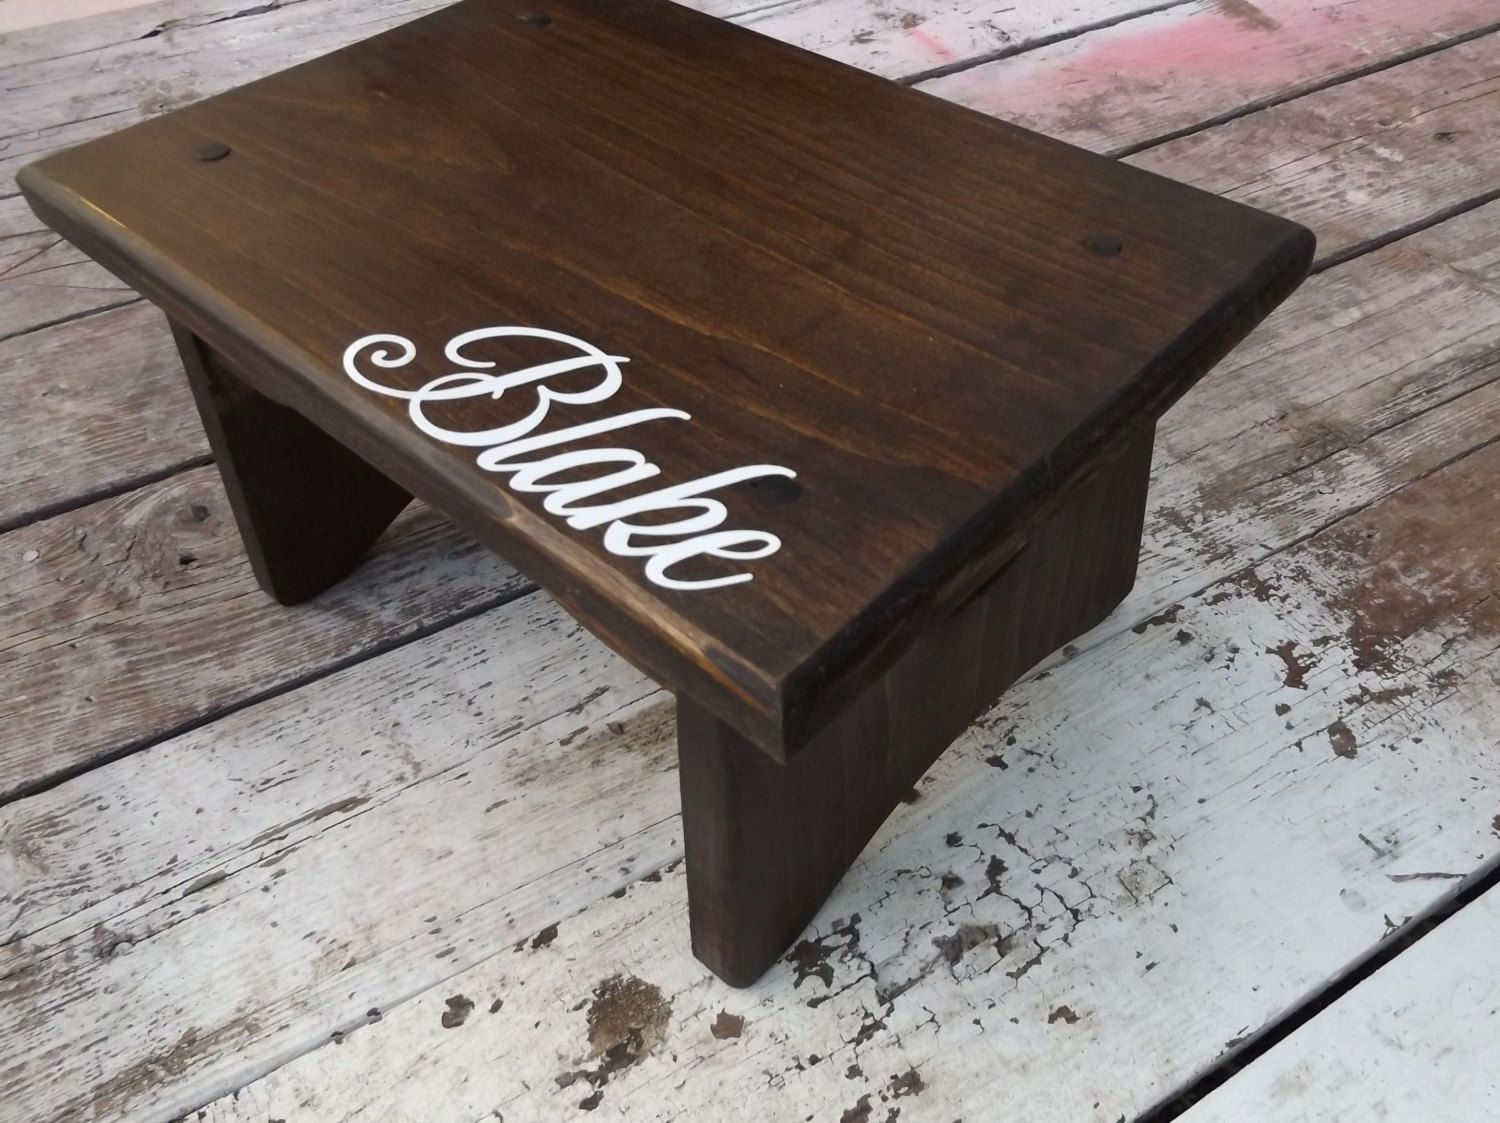 Swell Child Wooden Personalized Step Stool Walnut Stain All Over Caraccident5 Cool Chair Designs And Ideas Caraccident5Info